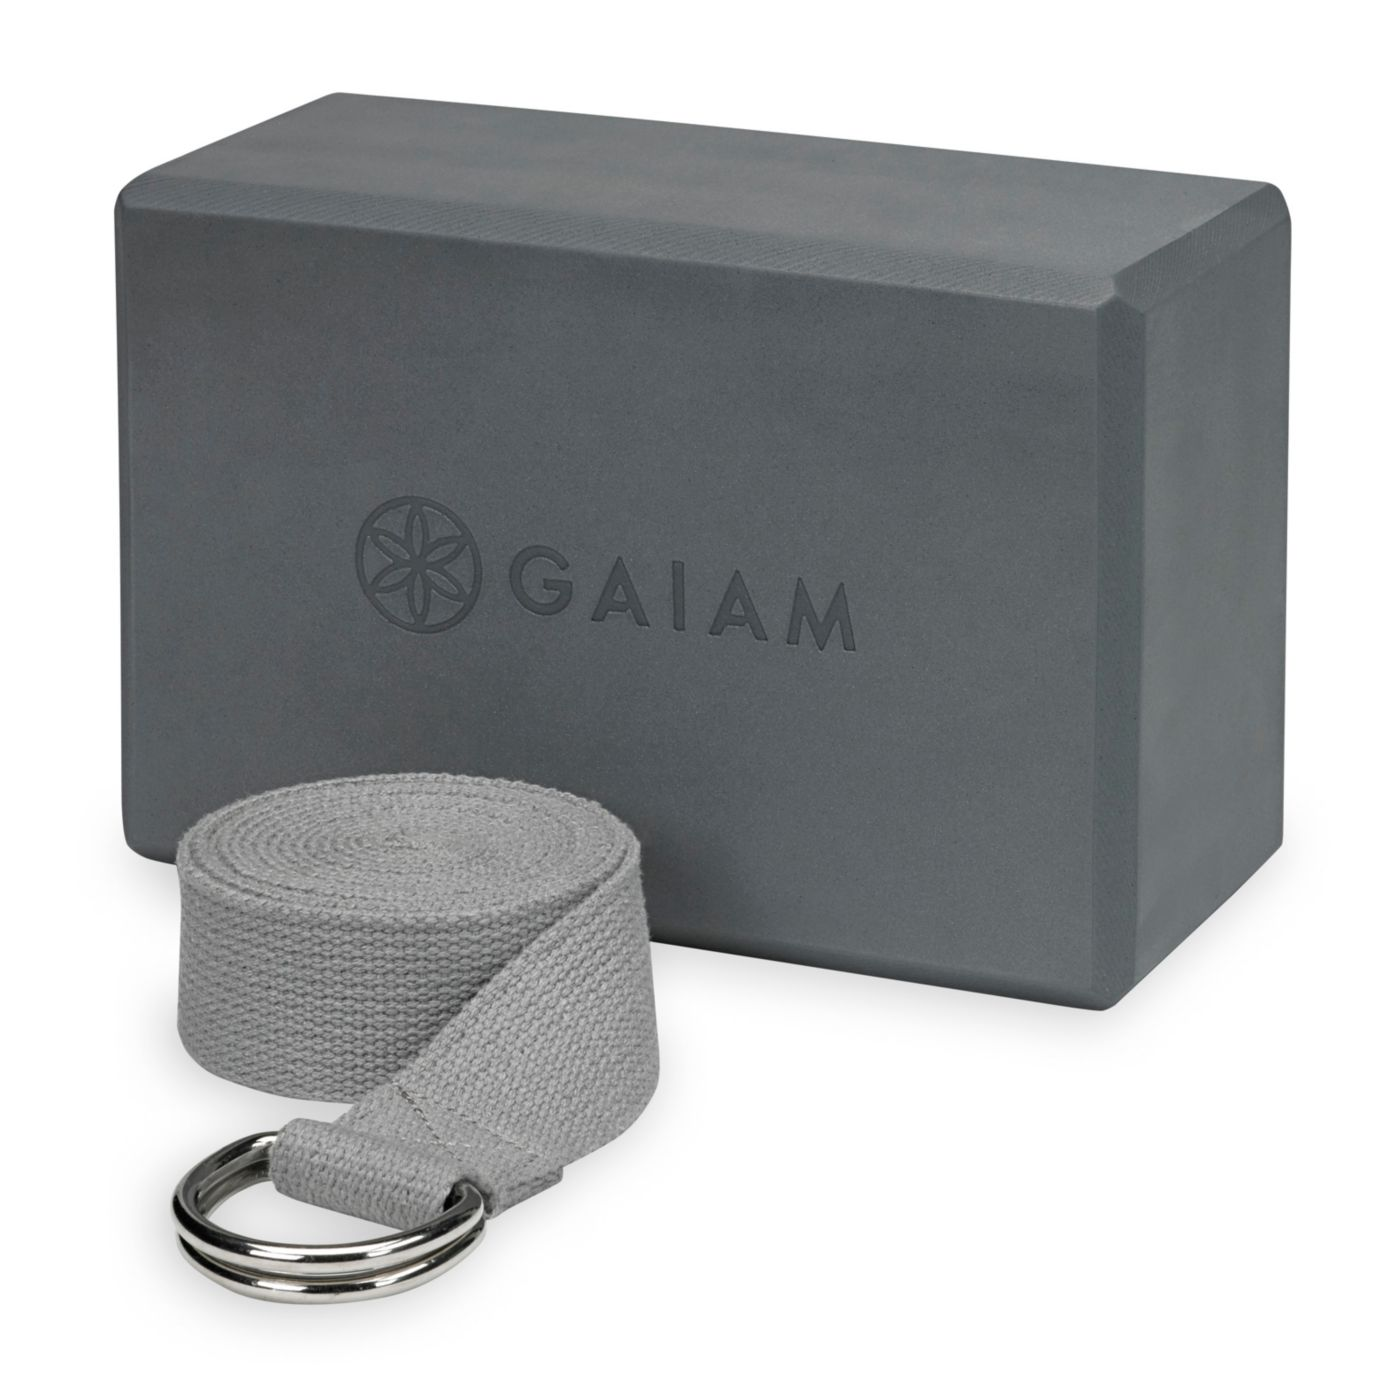 Gaiam Yoga Block/Strap Combo